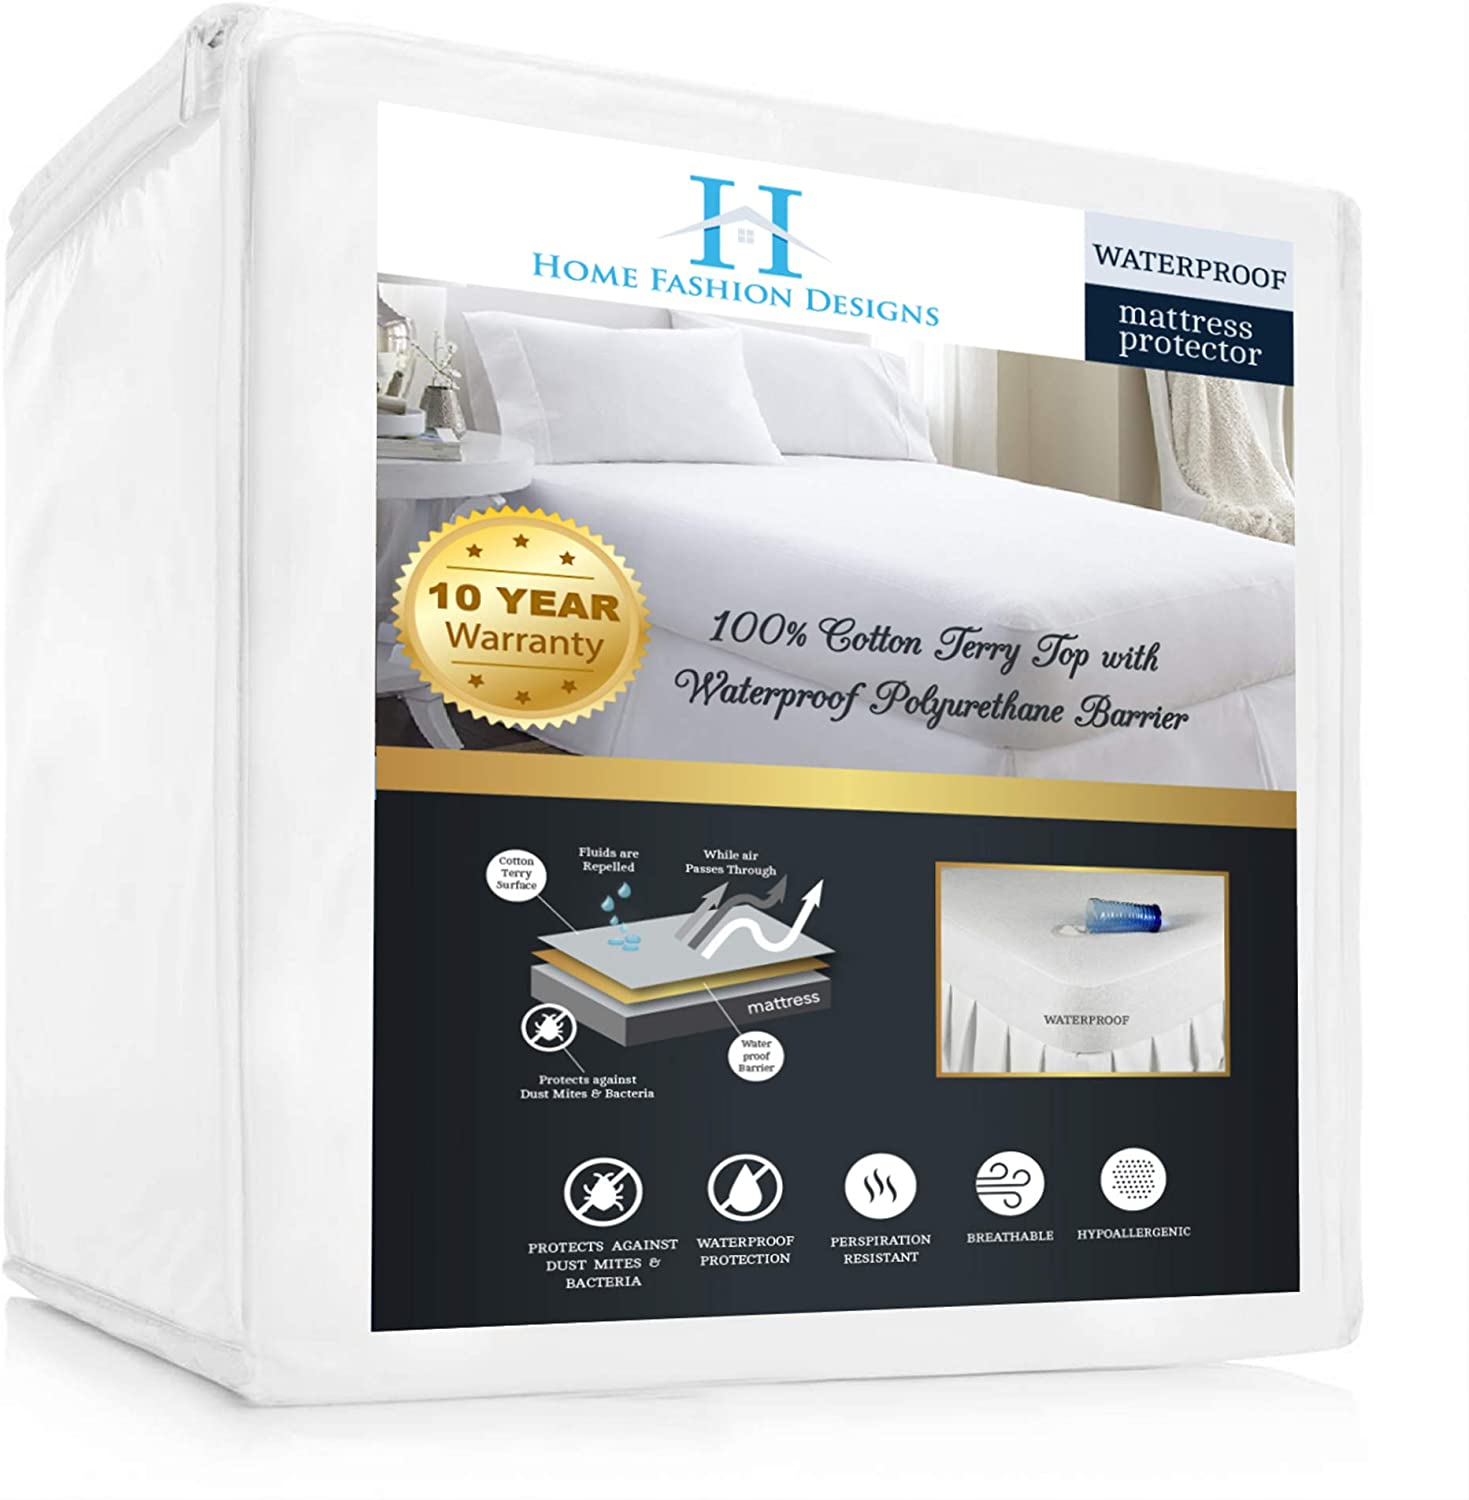 Home Fashion Designs Premium 100% Waterproof Queen Size Mattress Protector | Hypoallergenic | Vinyl Free, Noise Free | Deep Pocket Fitted Mattress Protector